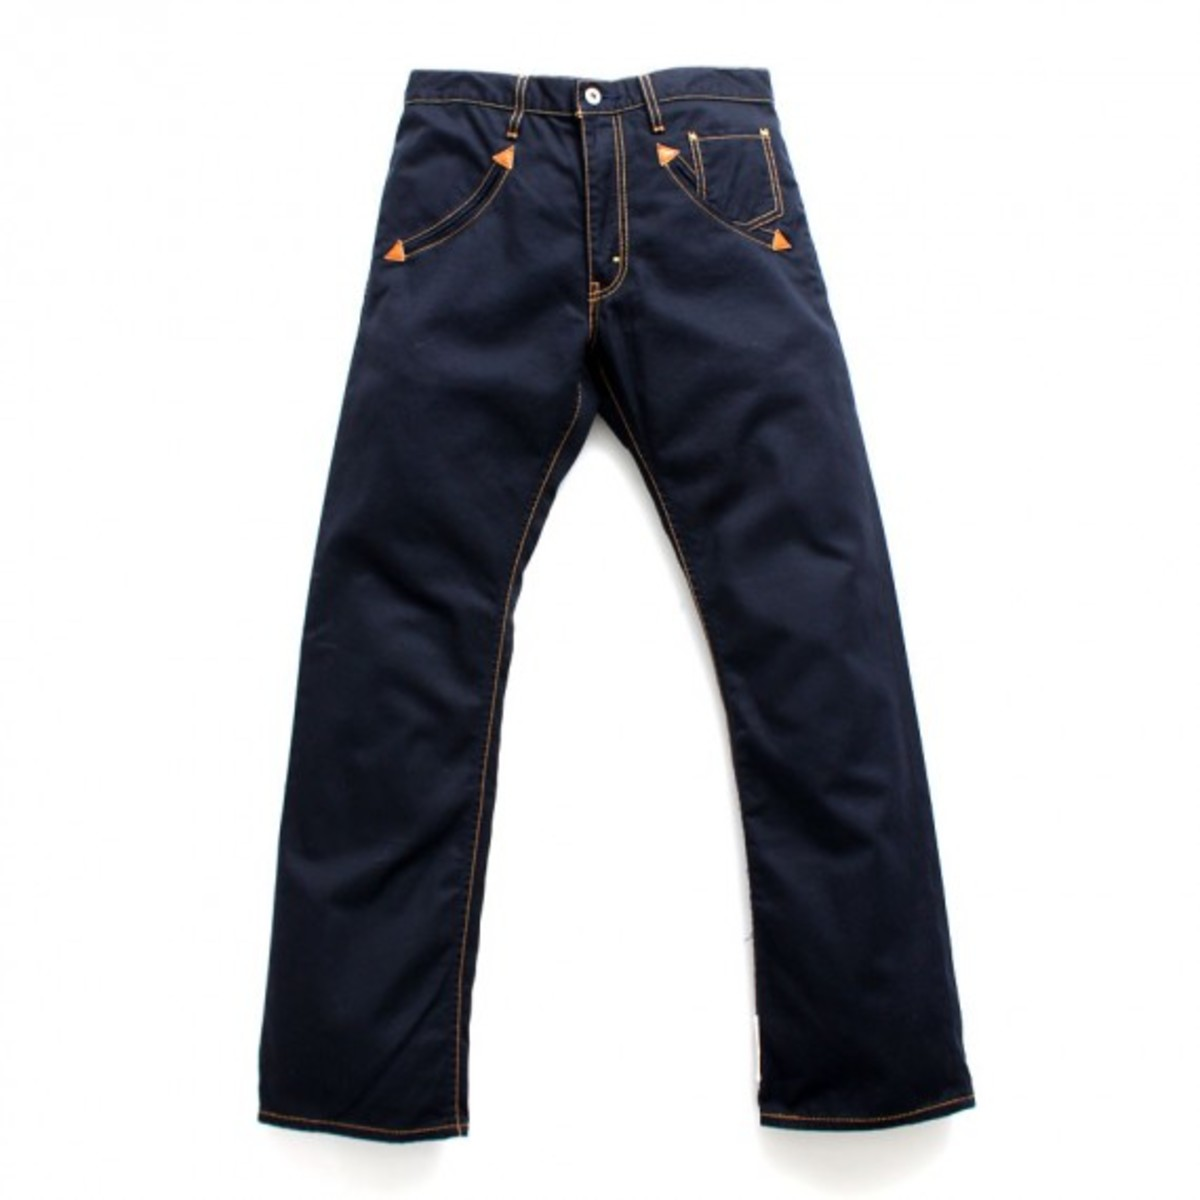 517-jeans-01